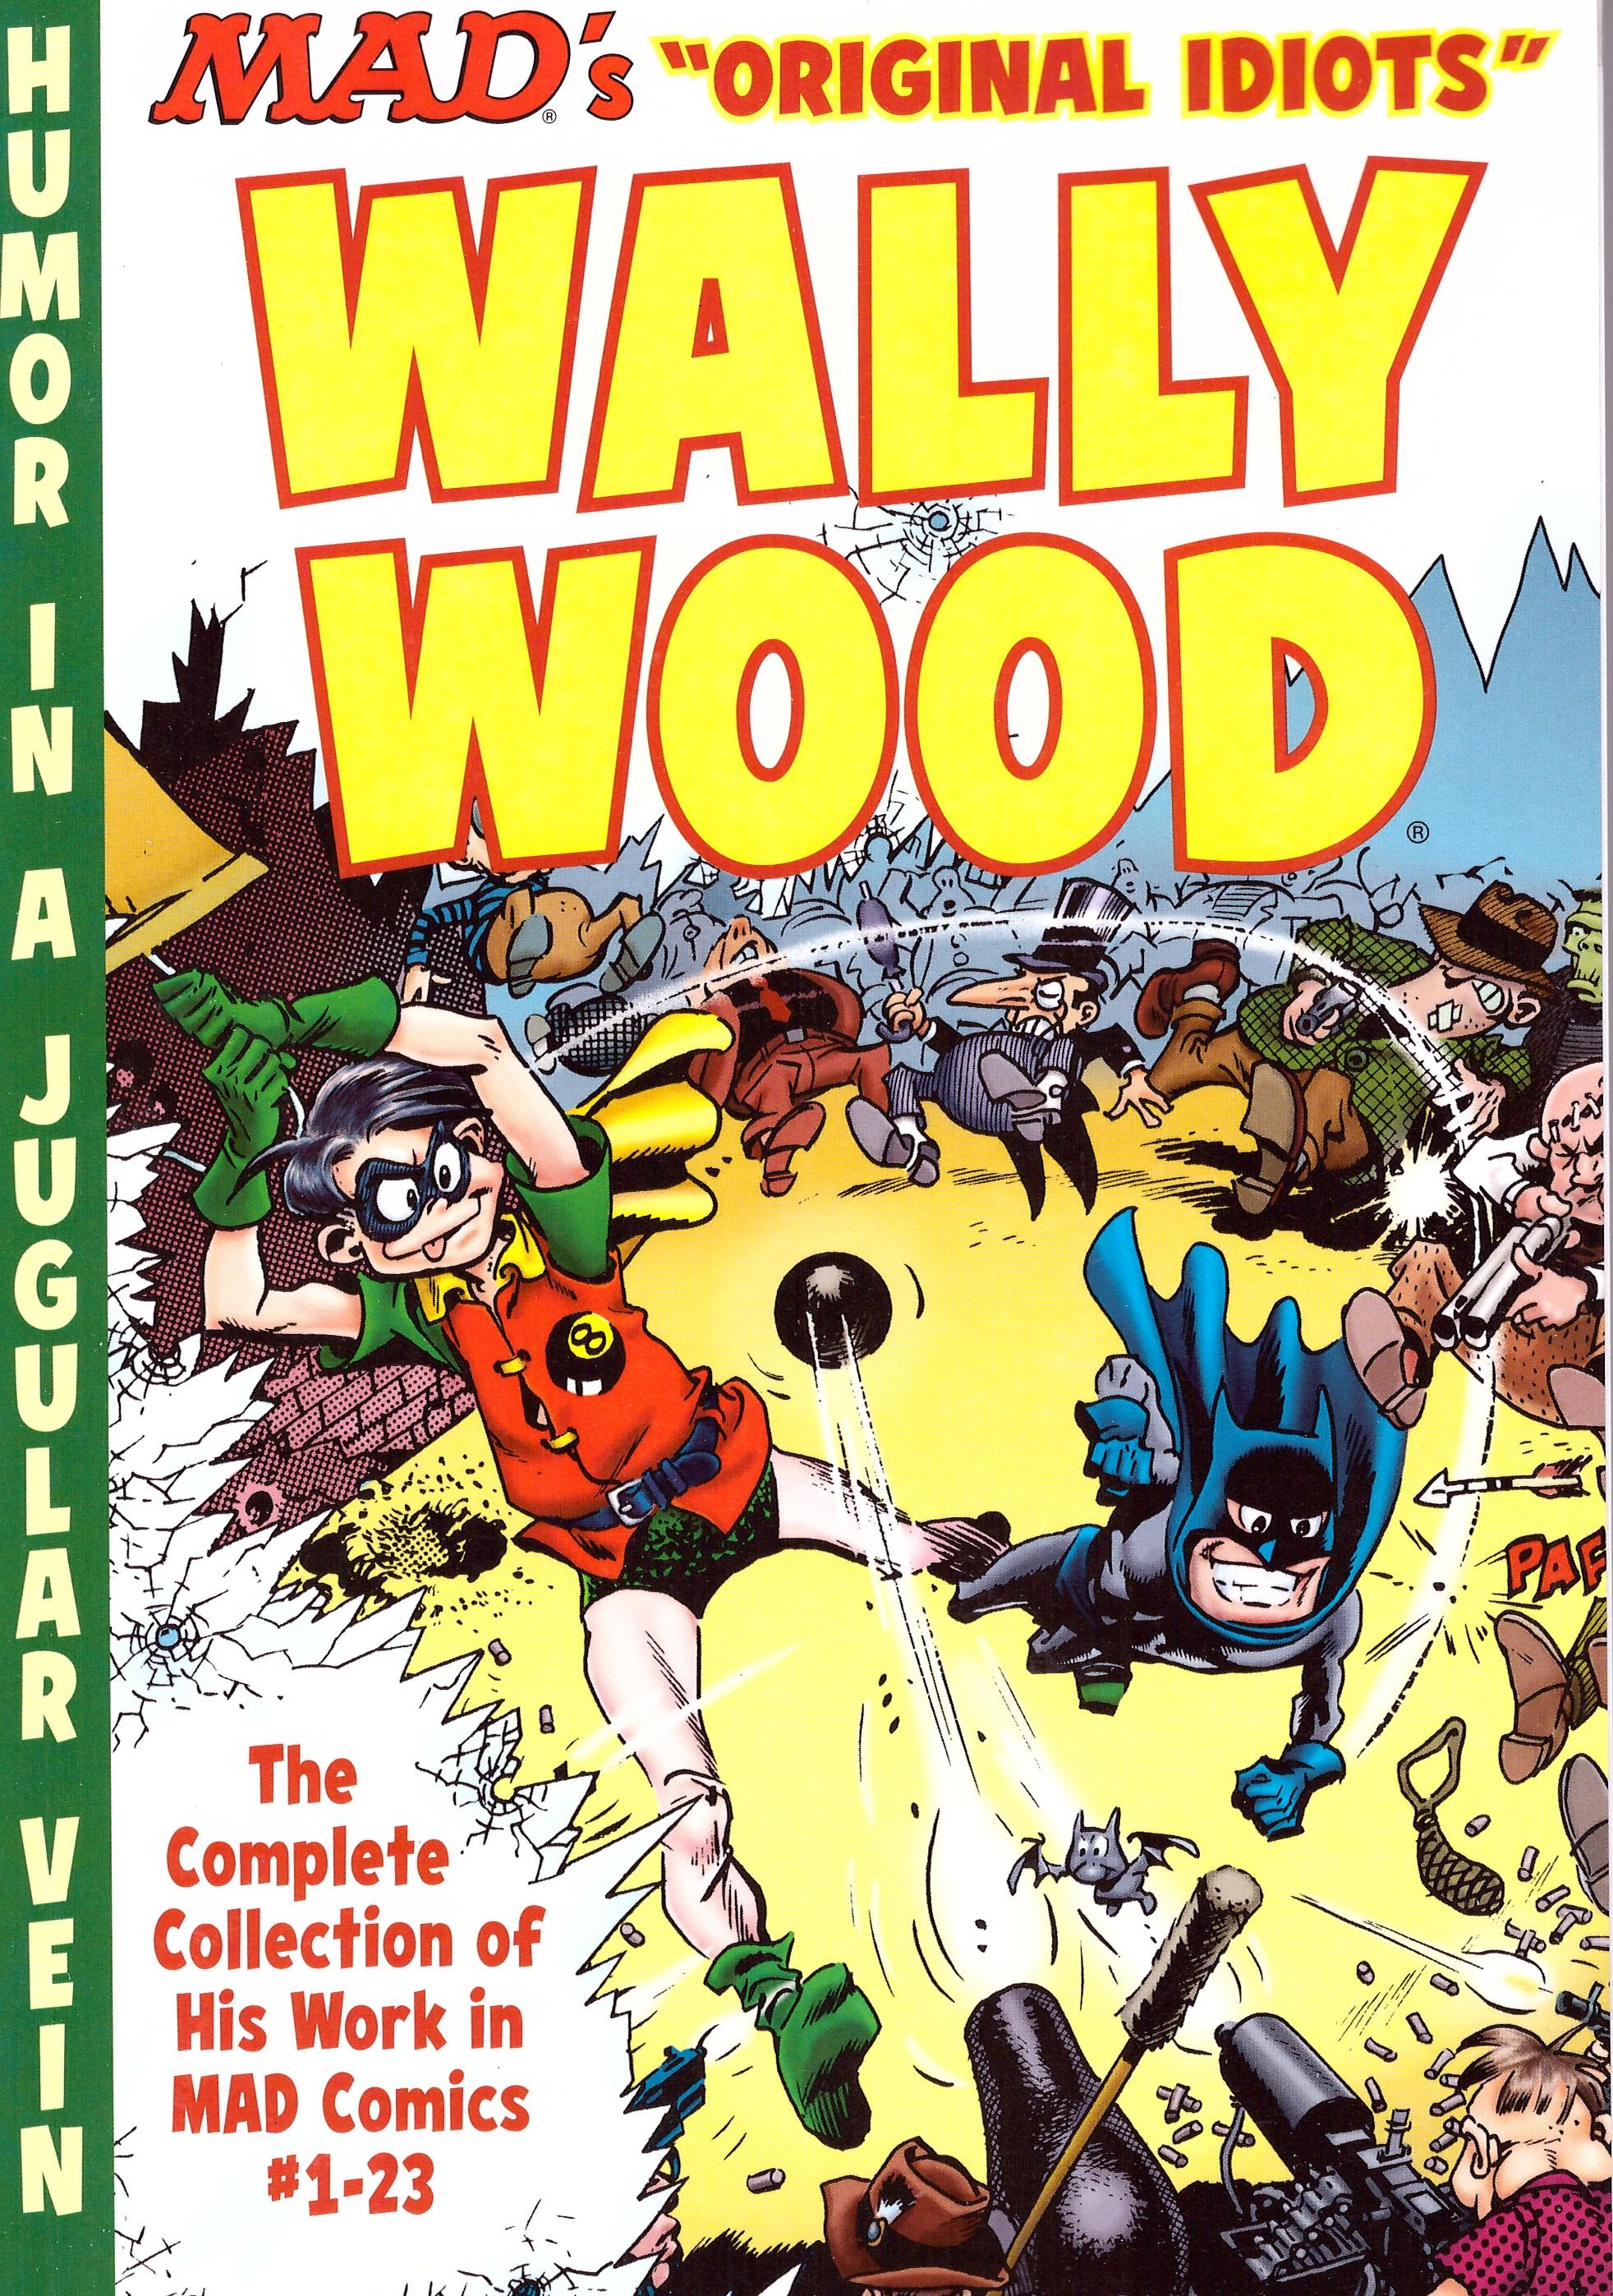 The MAD Art of Wally Wood: The Complete Collection of His Work from MAD Comics #1-23 • USA • 1st Edition - New York